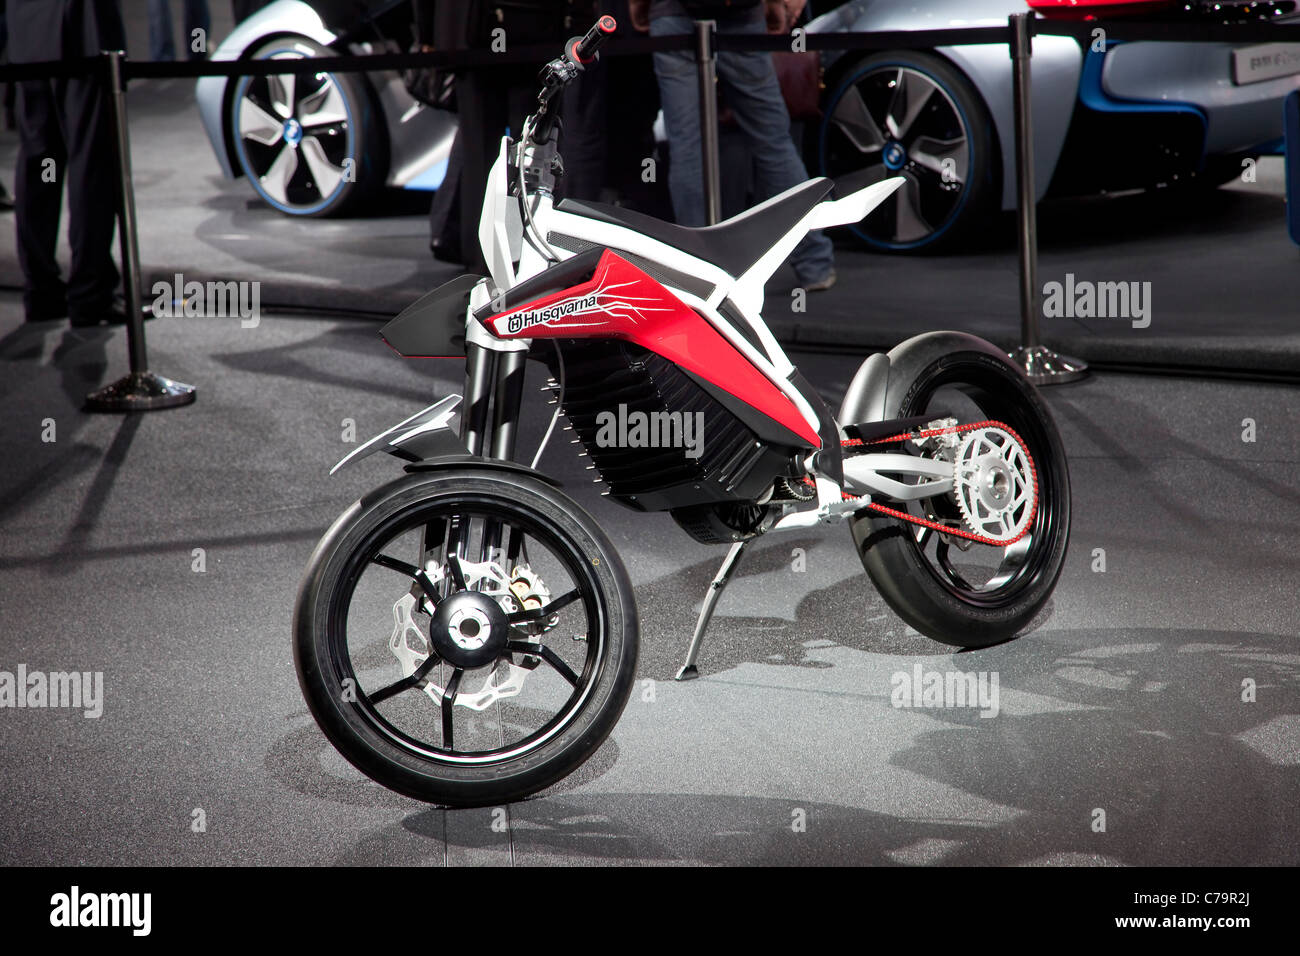 april fools real not s is it gs news bmw as hoax mcn sounds bonkers bike hybrid